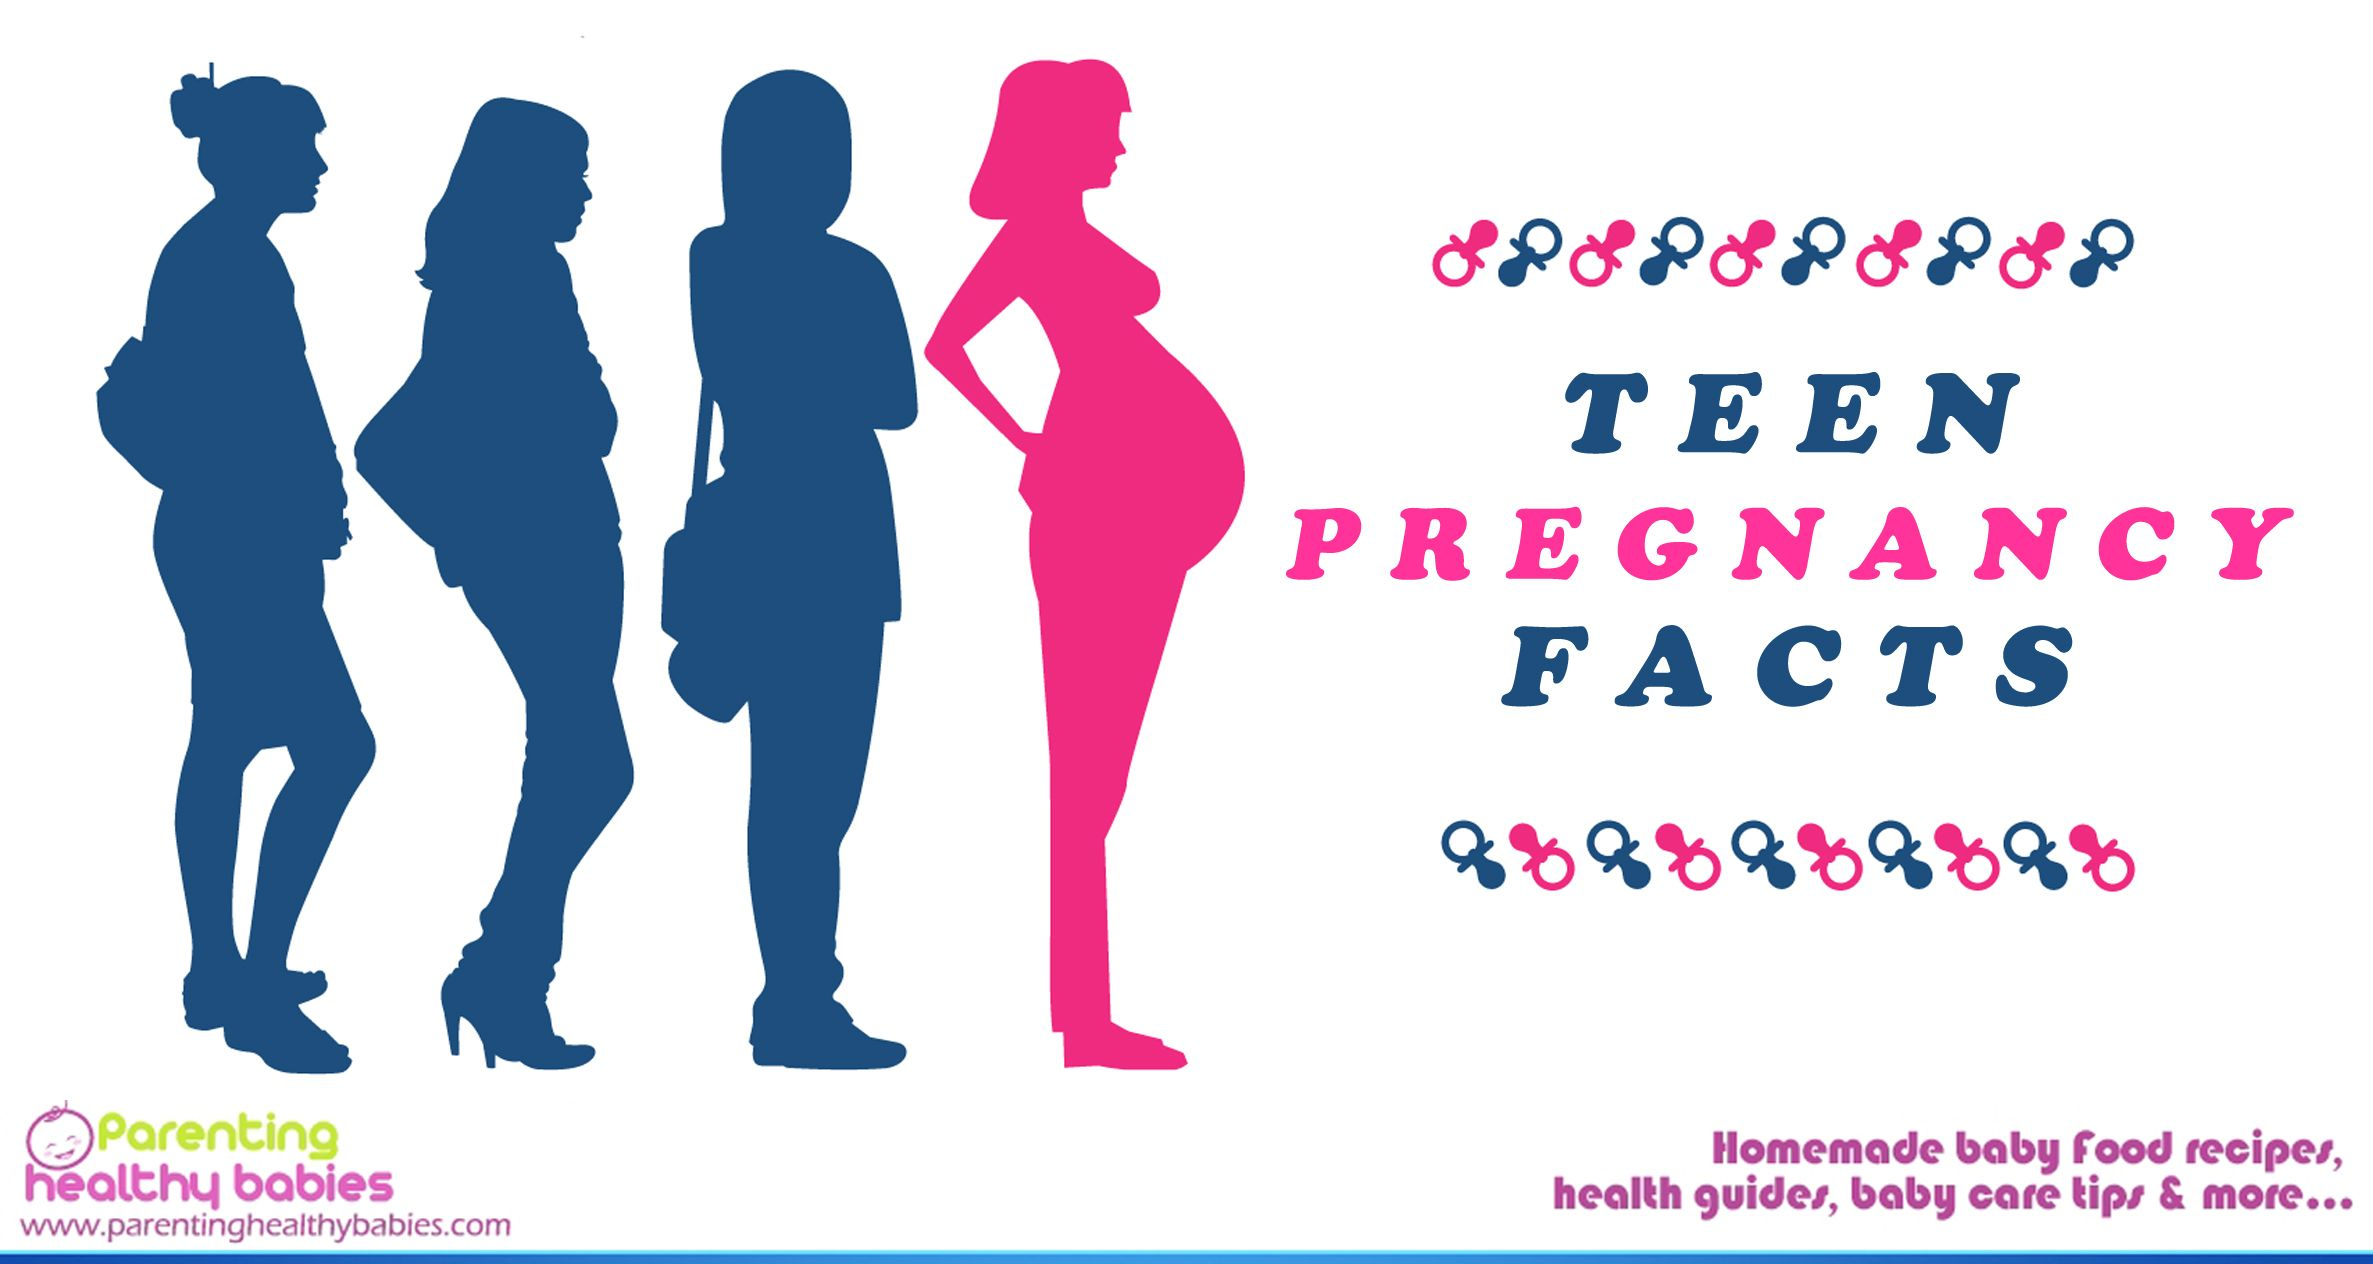 3 in 10 teen American girls will get pregnant at least once before age 20.  Check out some more interesting facts about teen pregnancy.